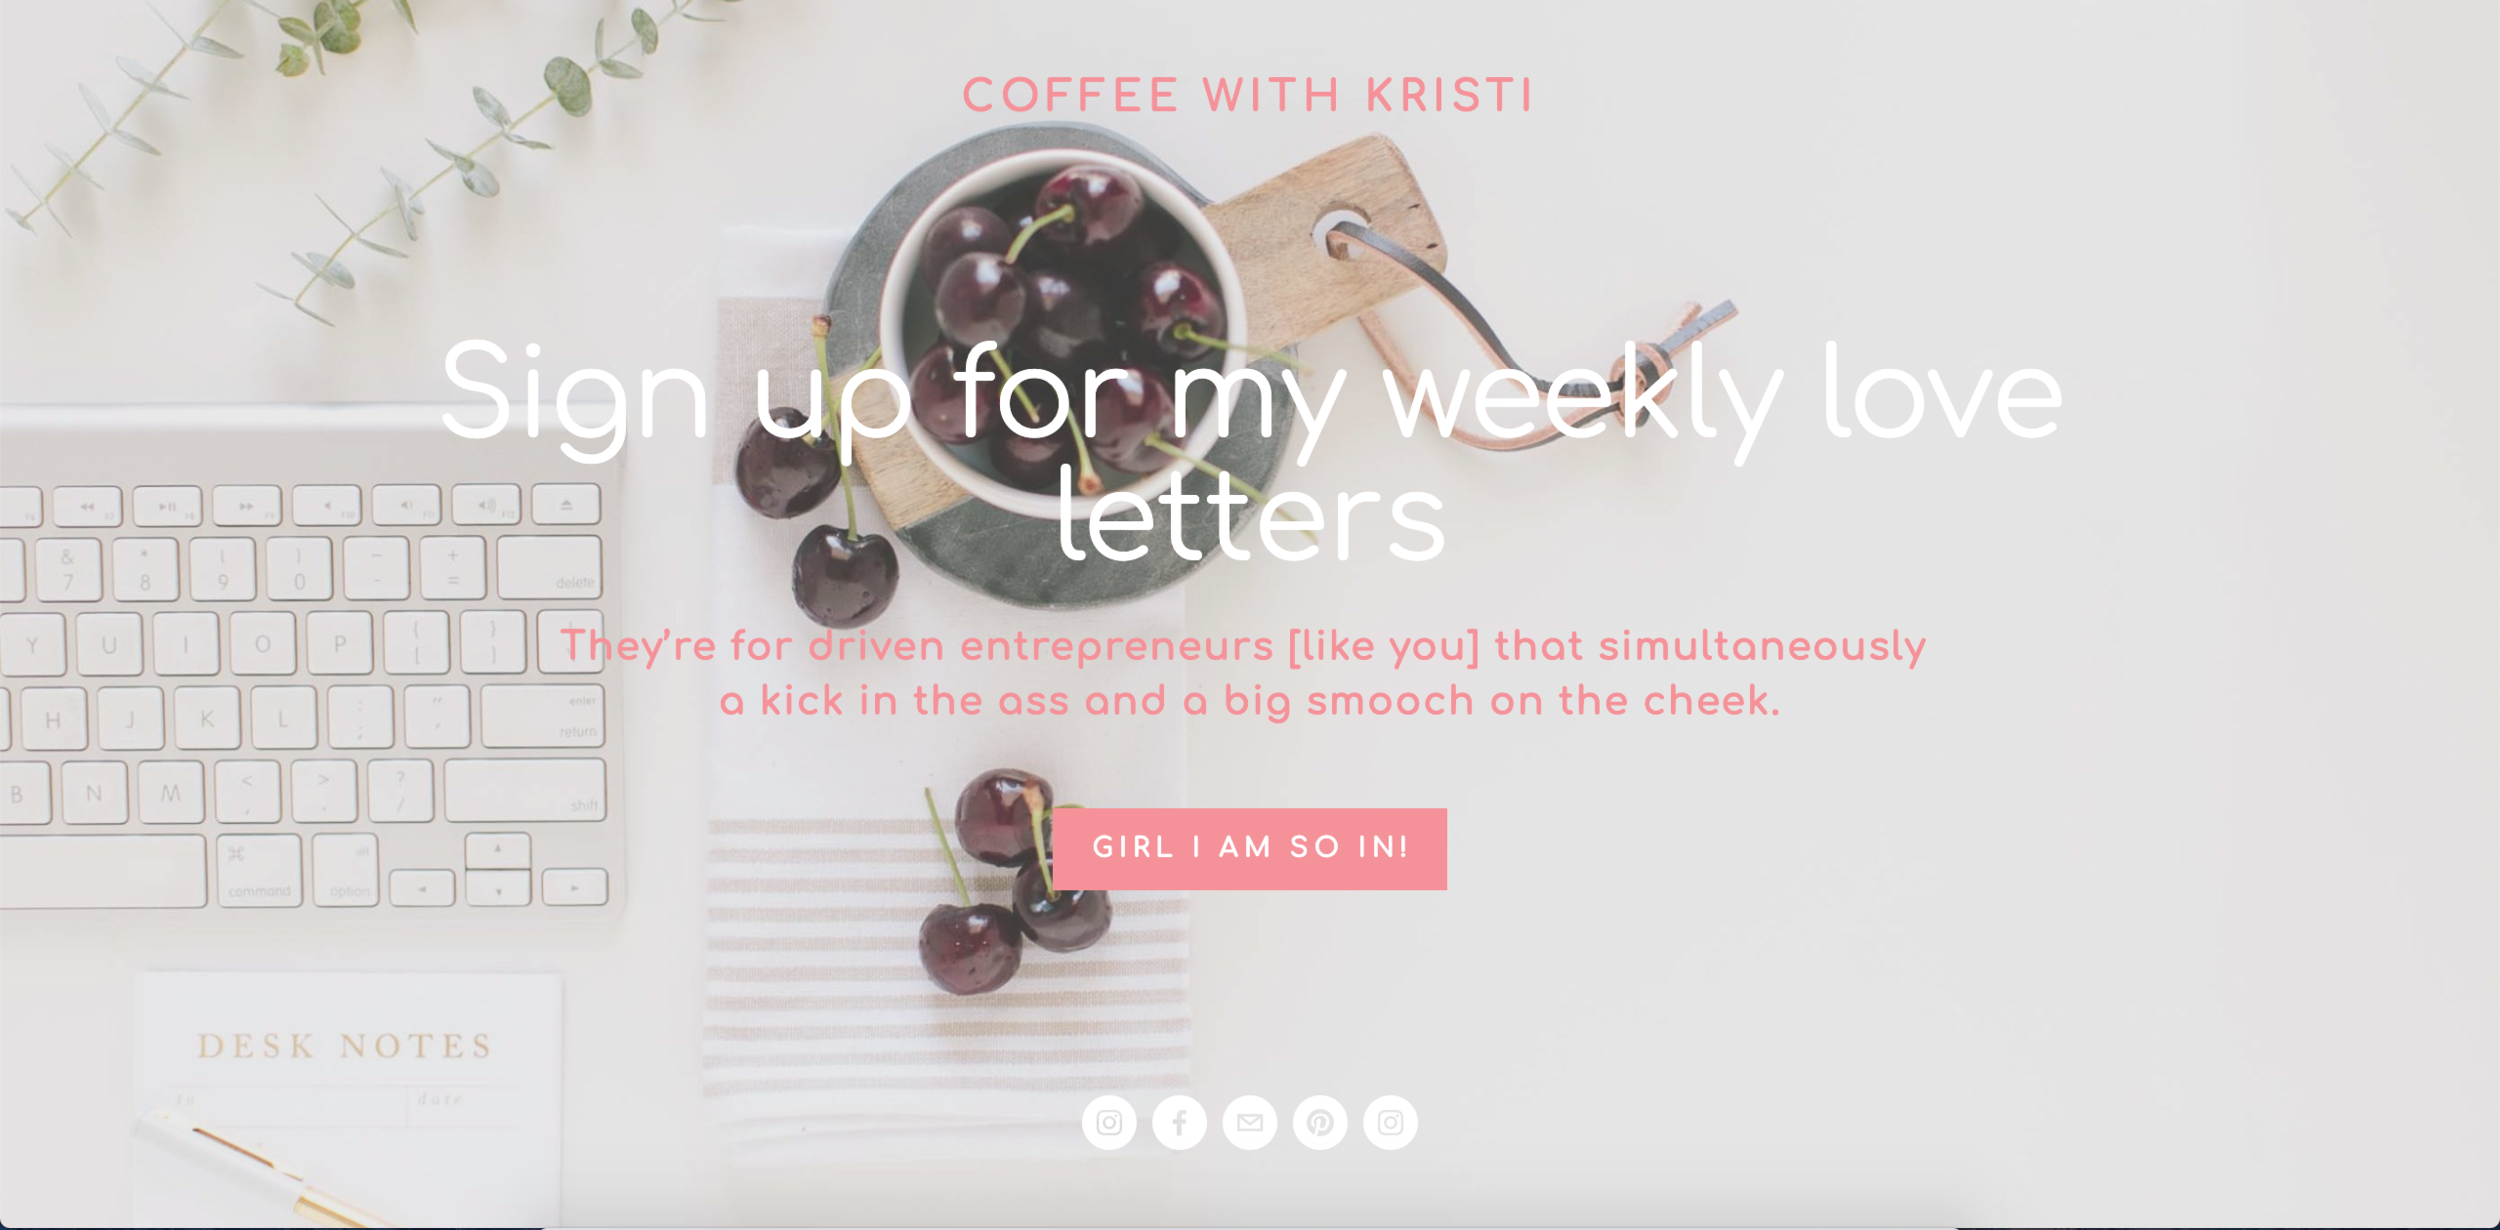 If you'd like more content like this straight to your inbox every single Tuesday morning,  subscribe  to receive my weekly love letters. I can't WAIT to be BFF's!